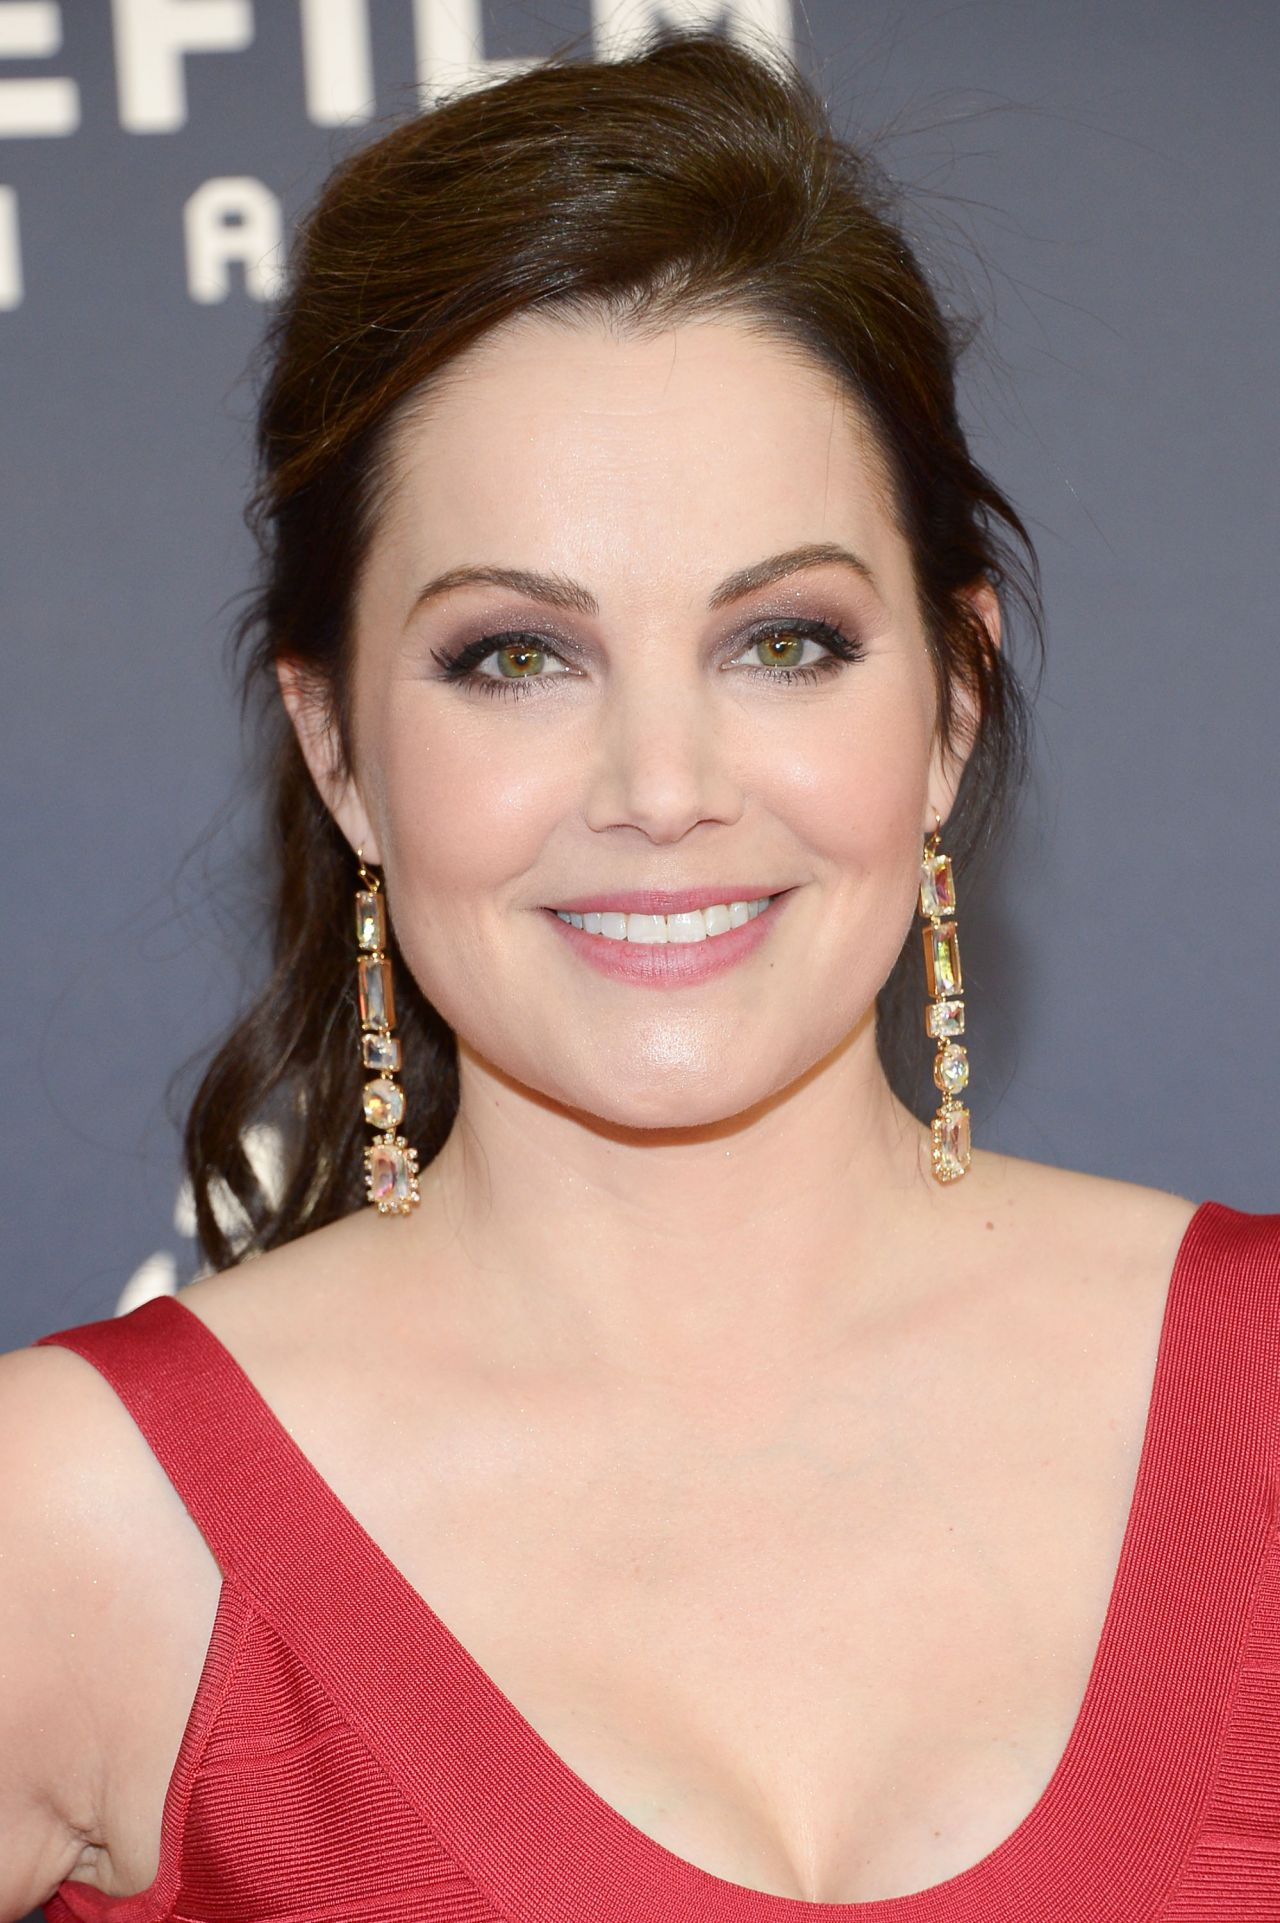 Erica Durance images 11